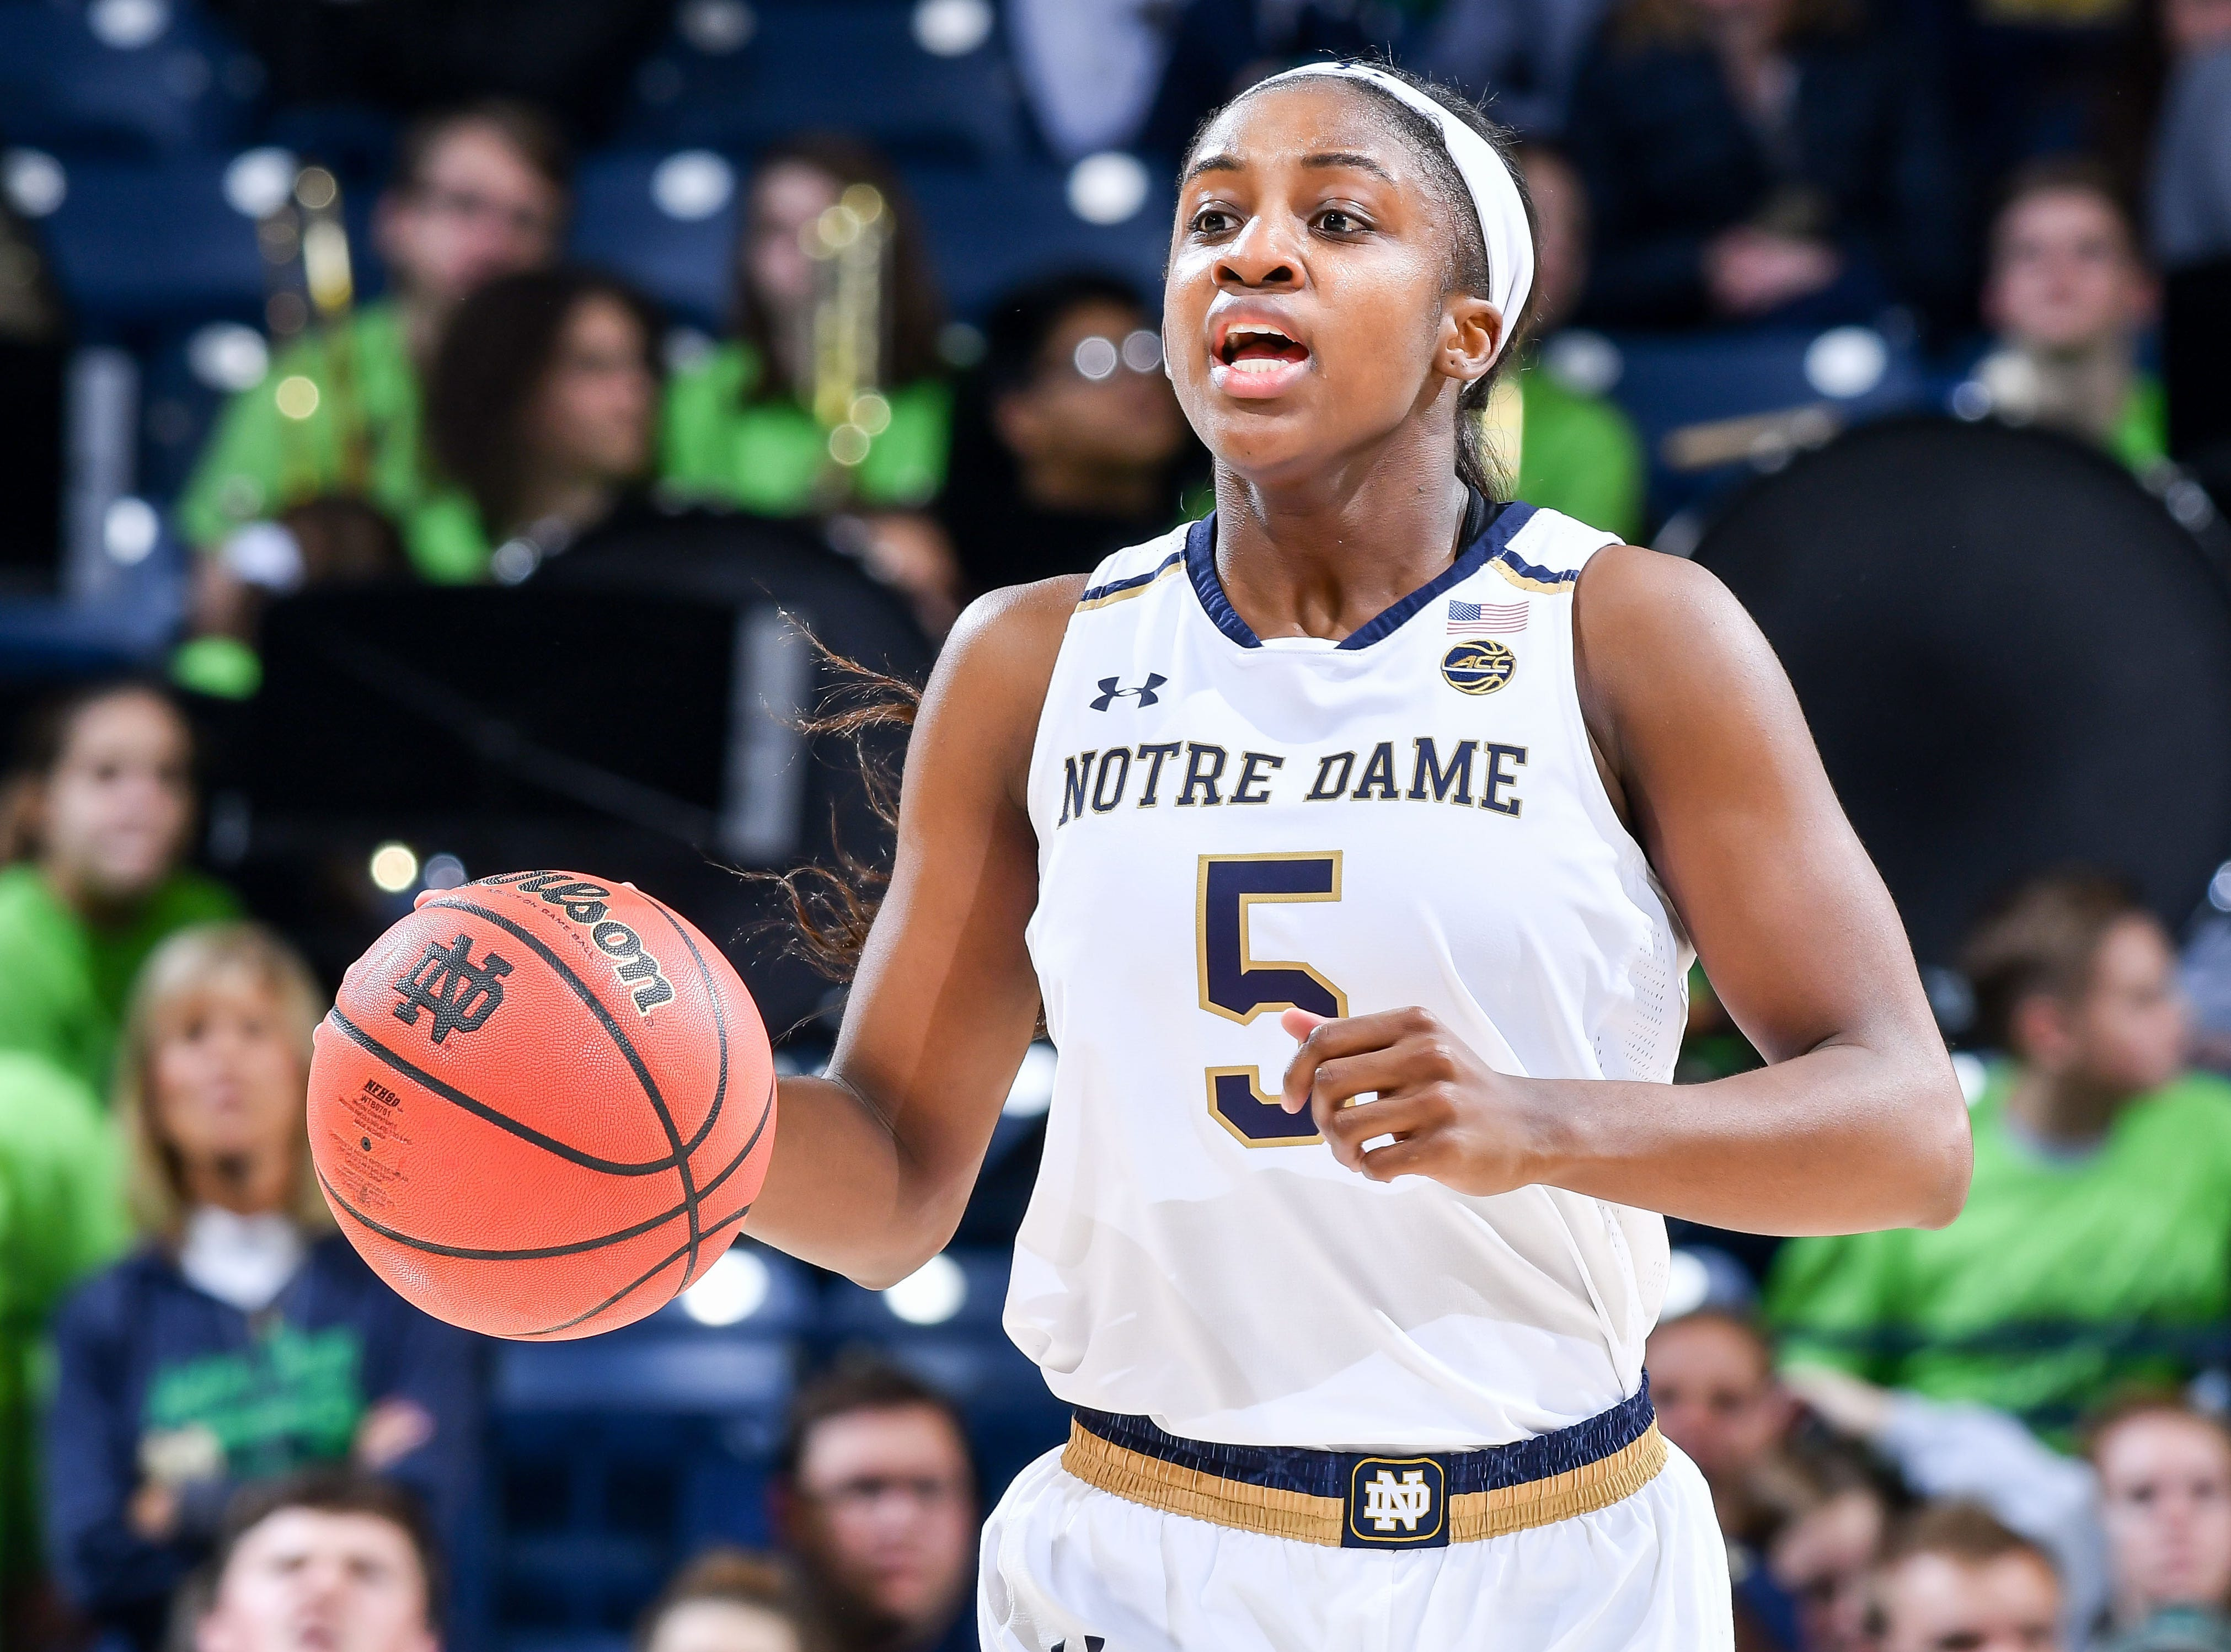 Jan 10, 2019; South Bend, IN, USA; Notre Dame Fighting Irish guard Jackie Young (5) dribbles in the second half against the Louisville Cardinals at the Purcell Pavilion. Mandatory Credit: Matt Cashore-USA TODAY Sports